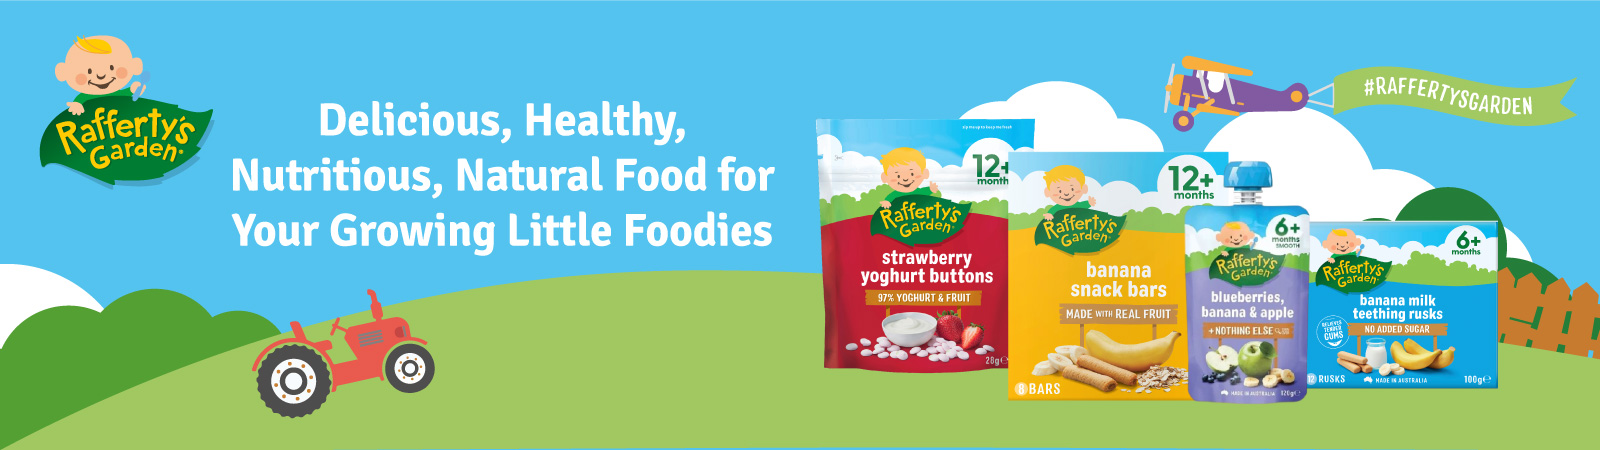 Rafferty's Garden Baby Purees: Because babies should love the taste of real food